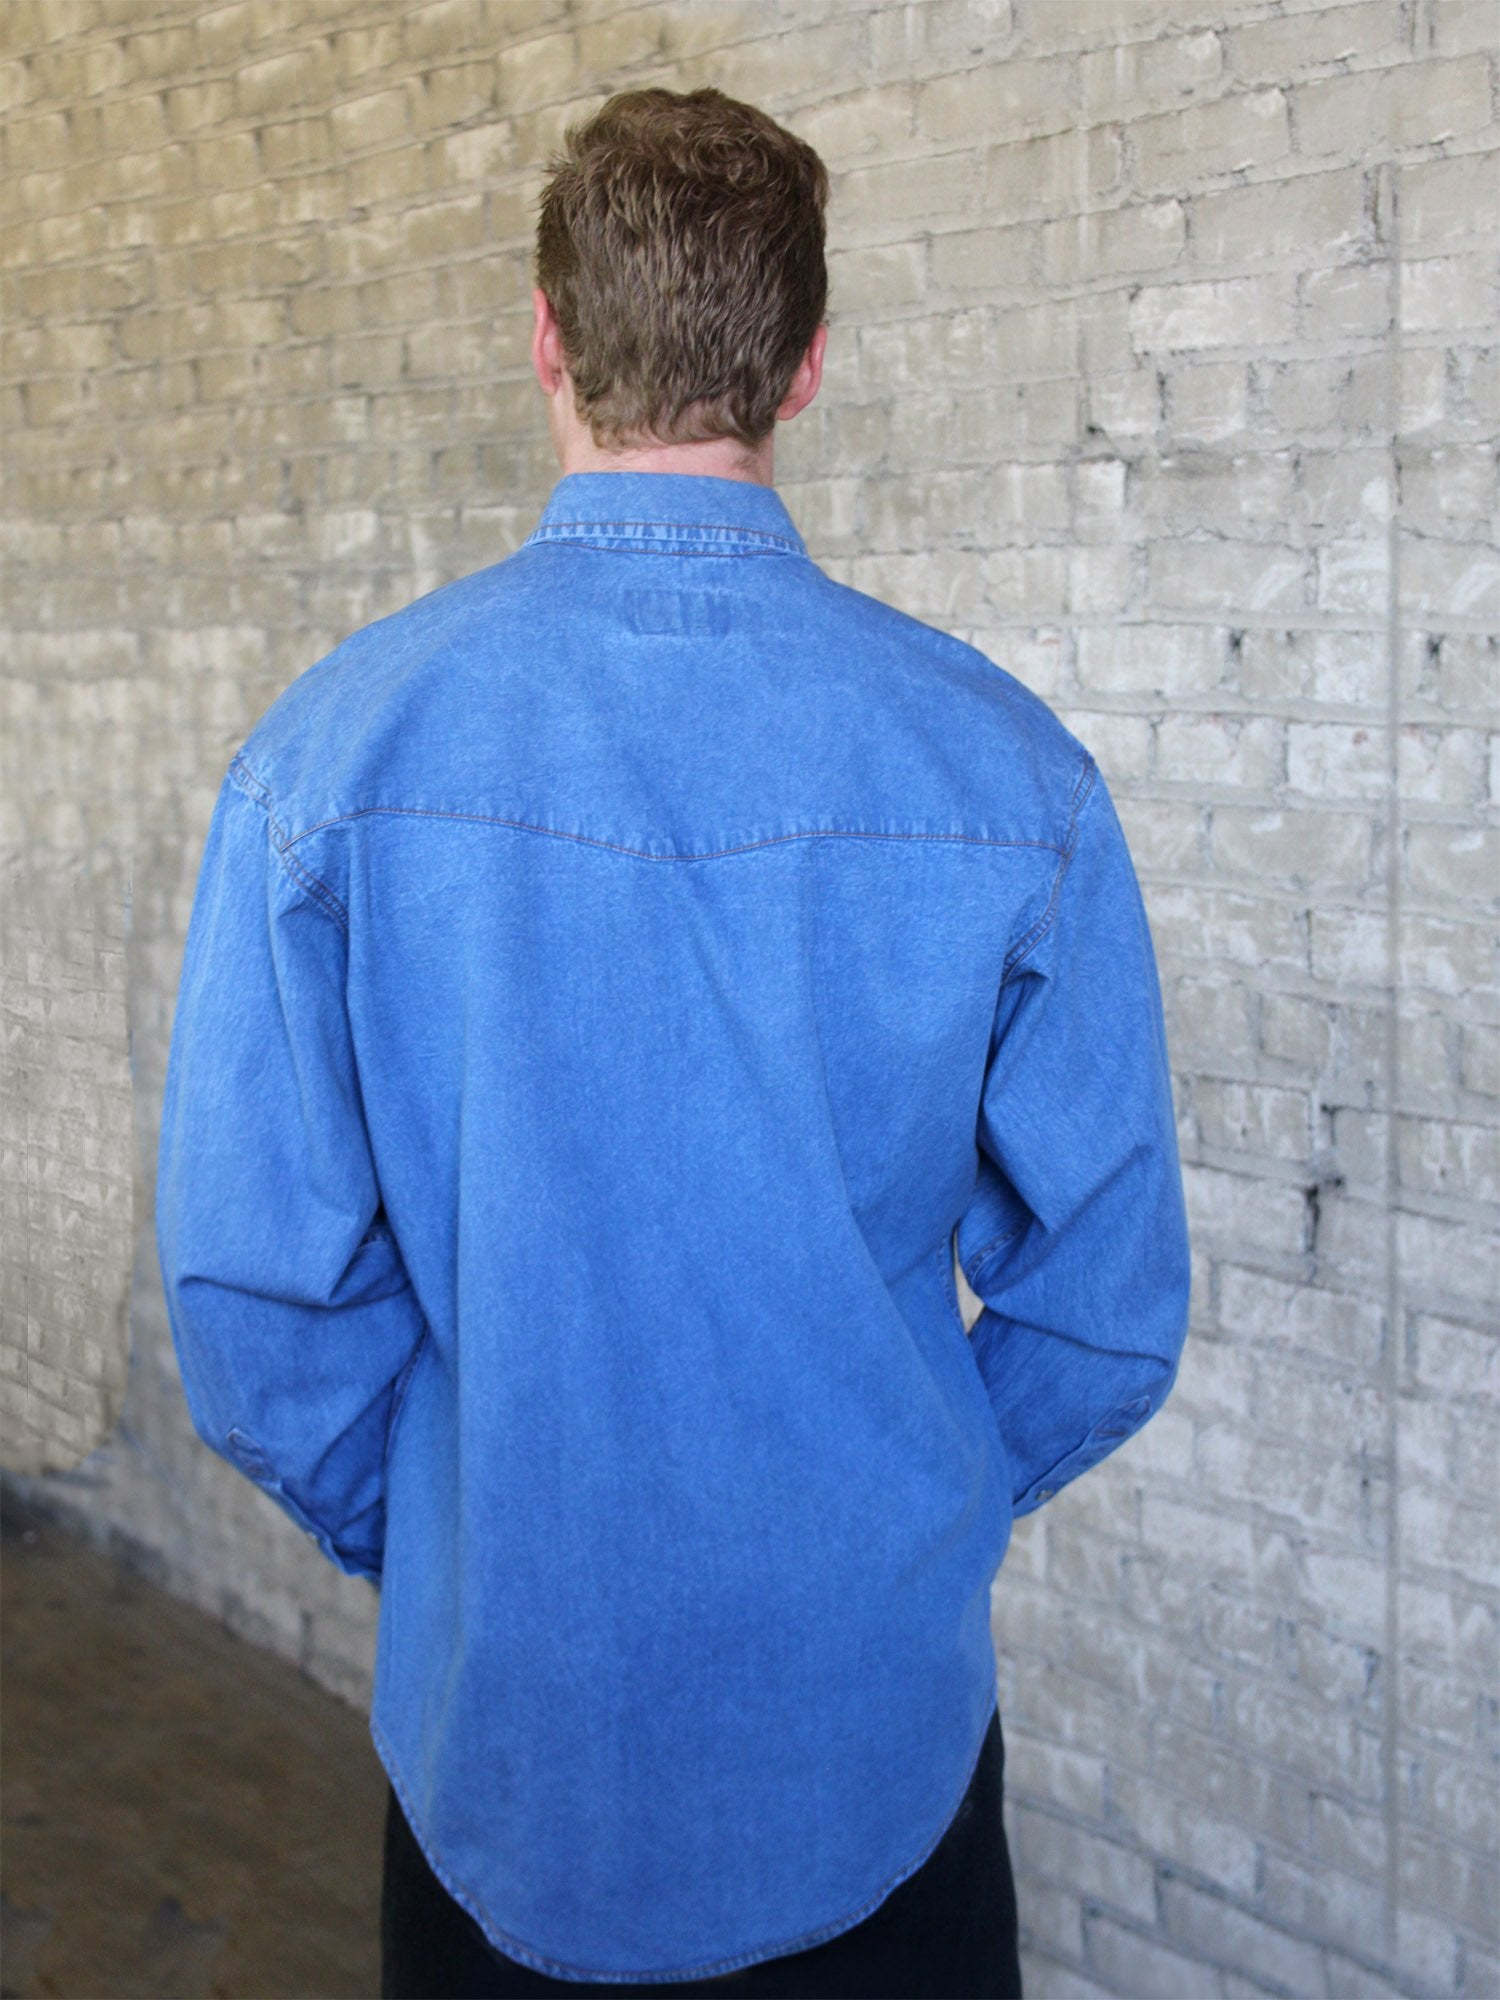 6bf048f1 Western Shirt Collection: Rockmount Ranch Wear Mens Stonewashed ...